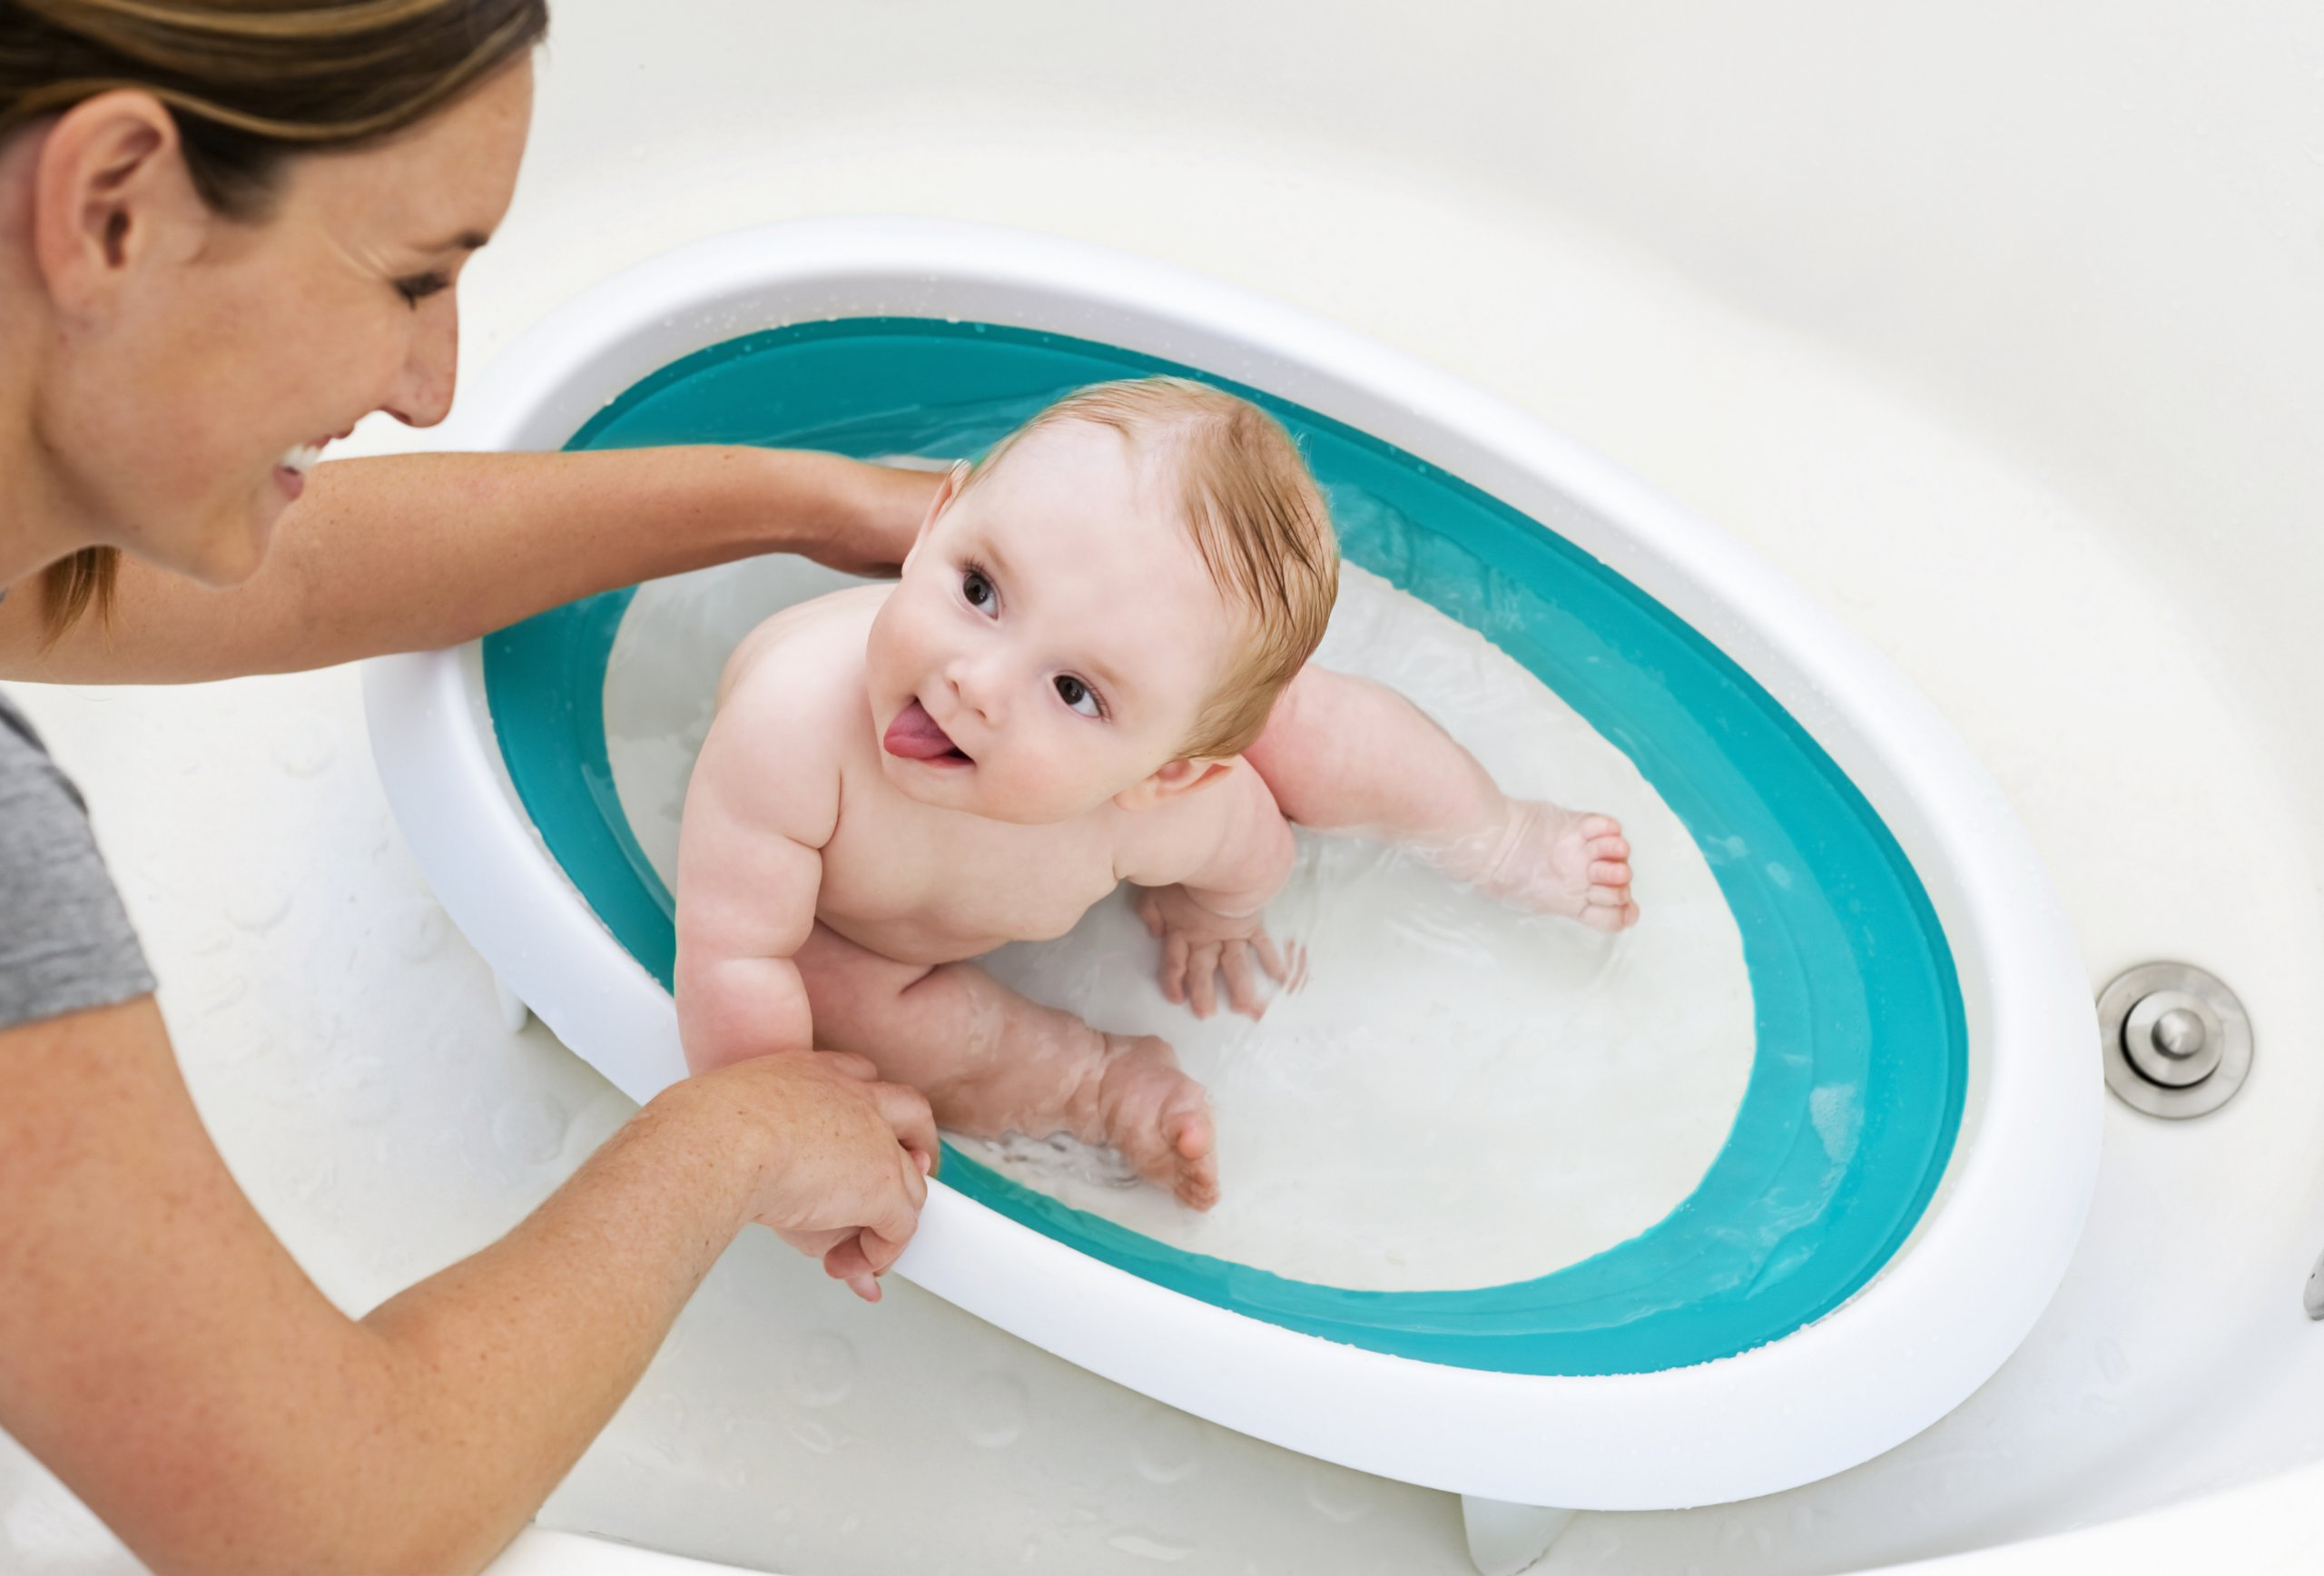 Boon Naked Collapsible Baby Bathtub Blue,Blue/White by Boon (Image #3)